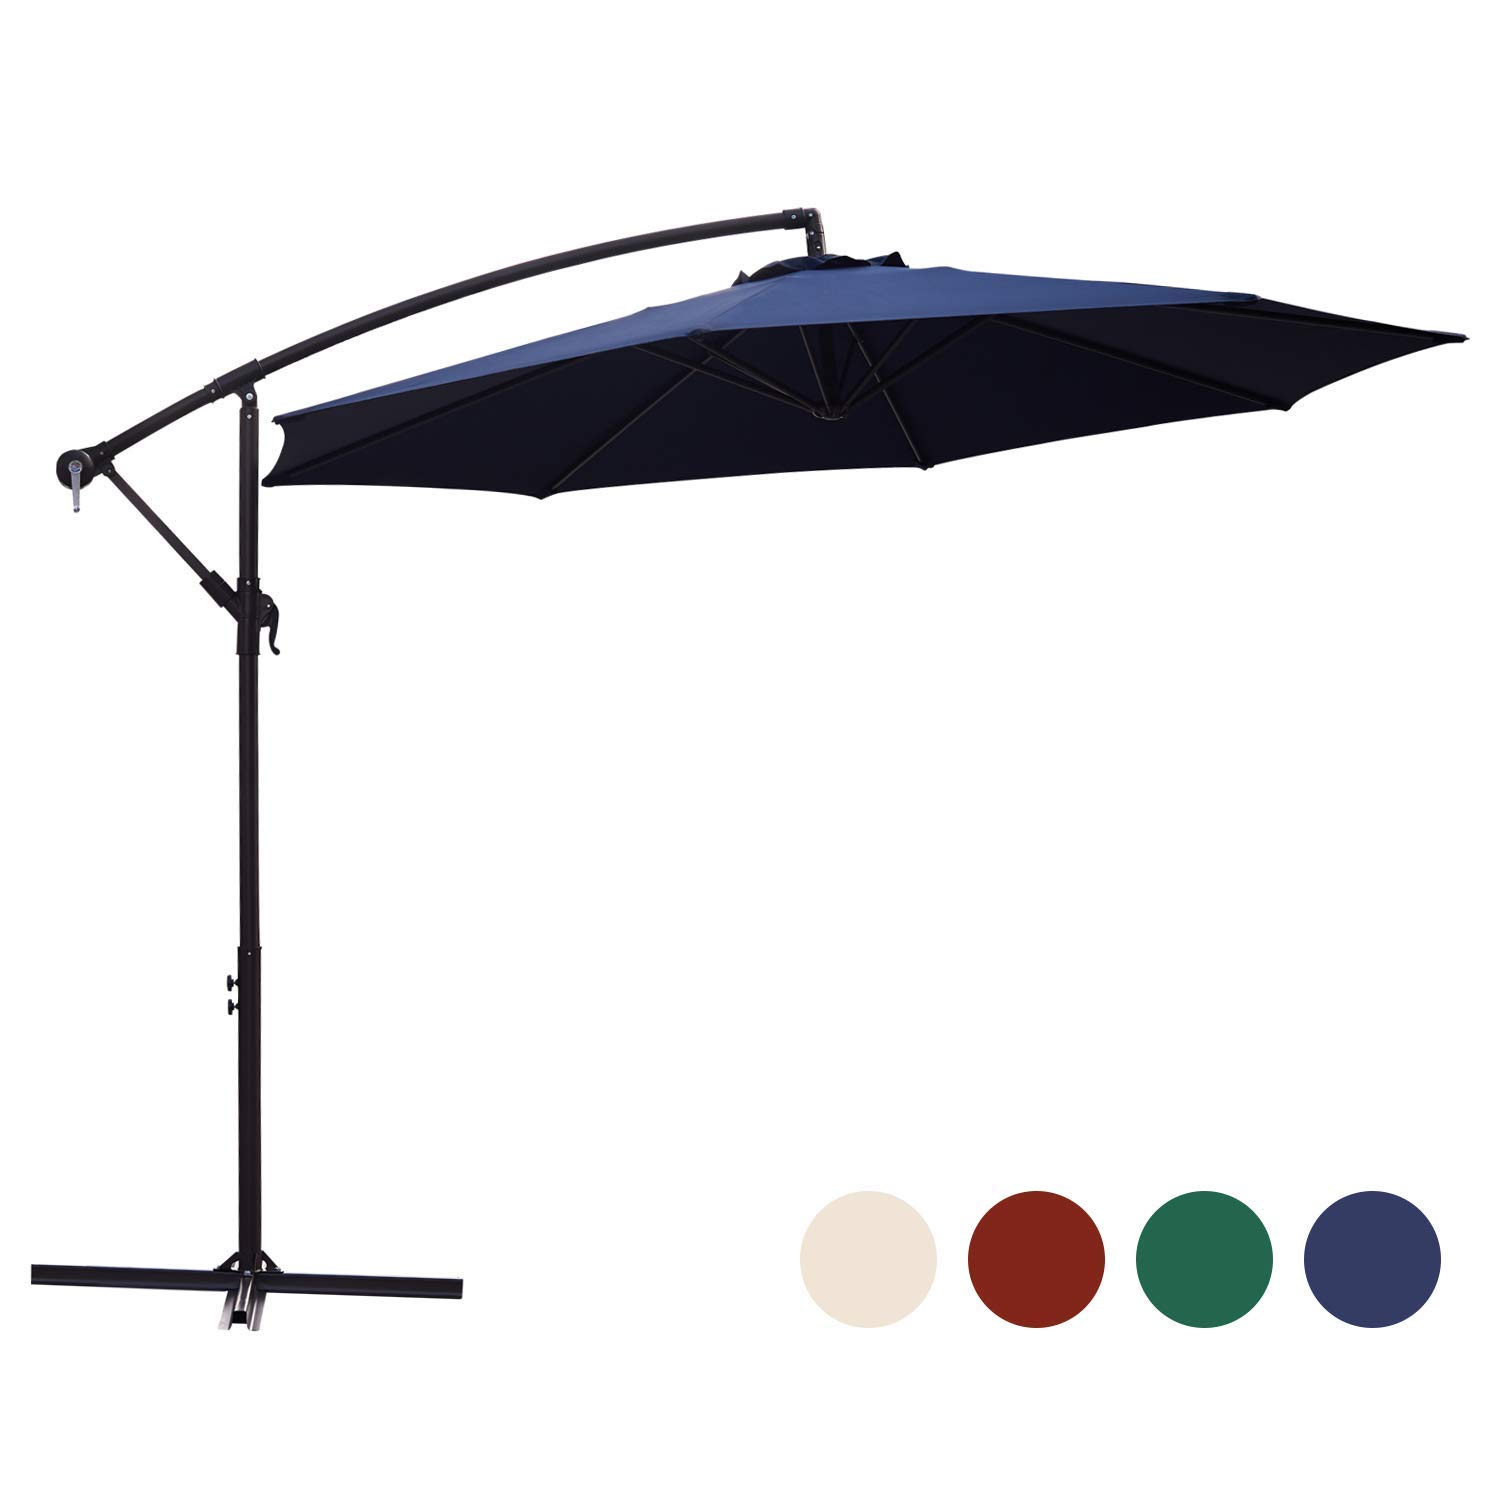 KINGYES 10ft Patio Offset Cantilever Umbrella Market Umbrellas Outdoor Umbrella with Crank & Cross Base for Garden, Deck,Backyard and Pool(Navy Blue)